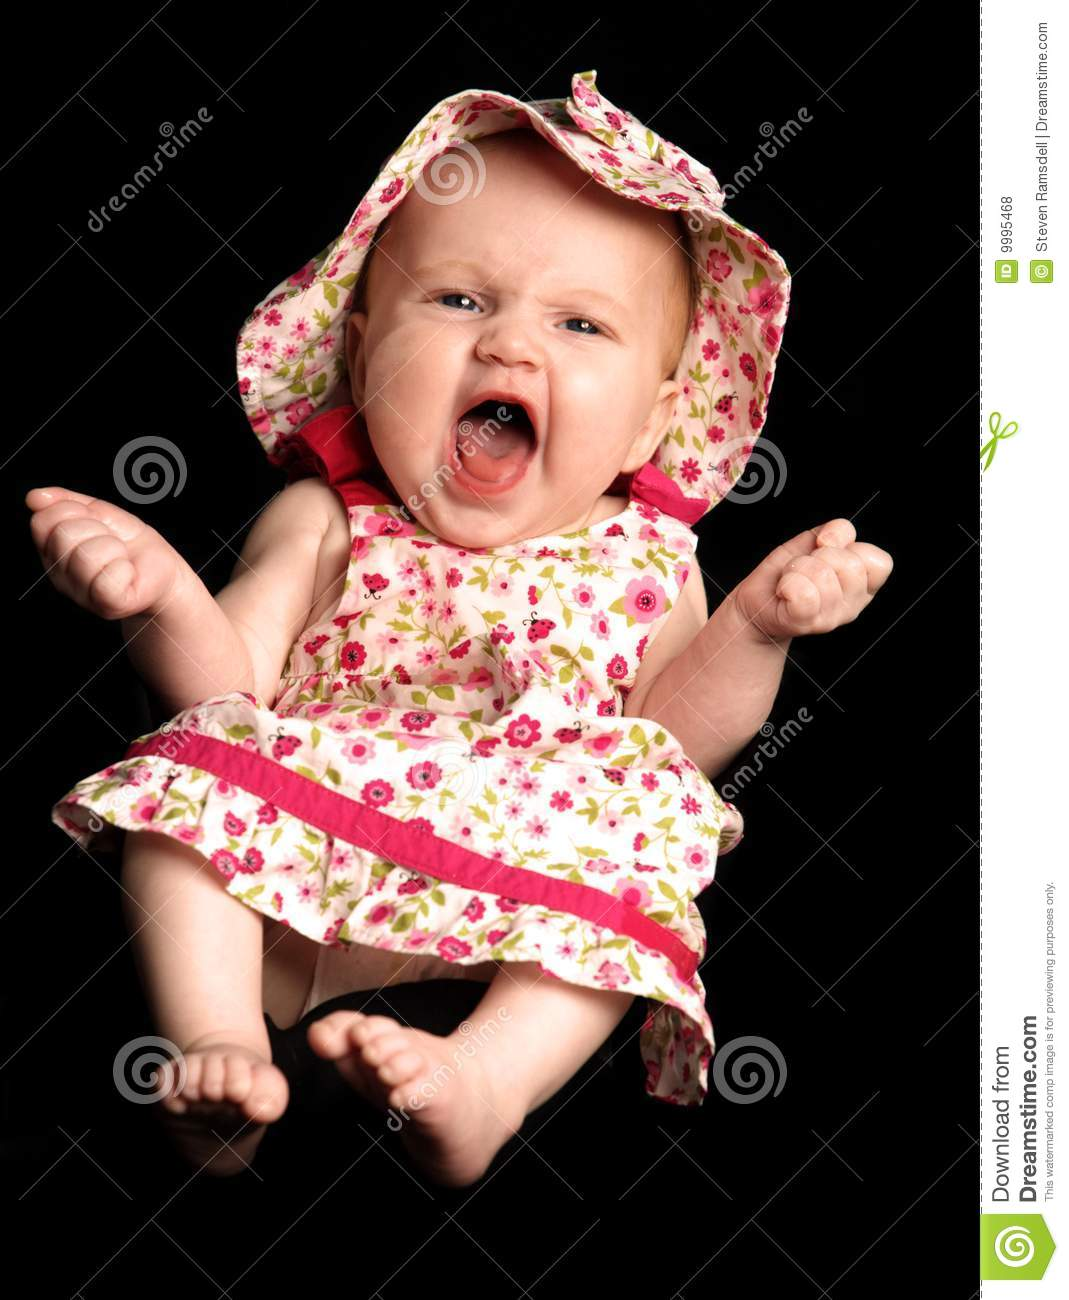 Baby Girl Laughing Royalty Free Stock Photos - Image: 9995468